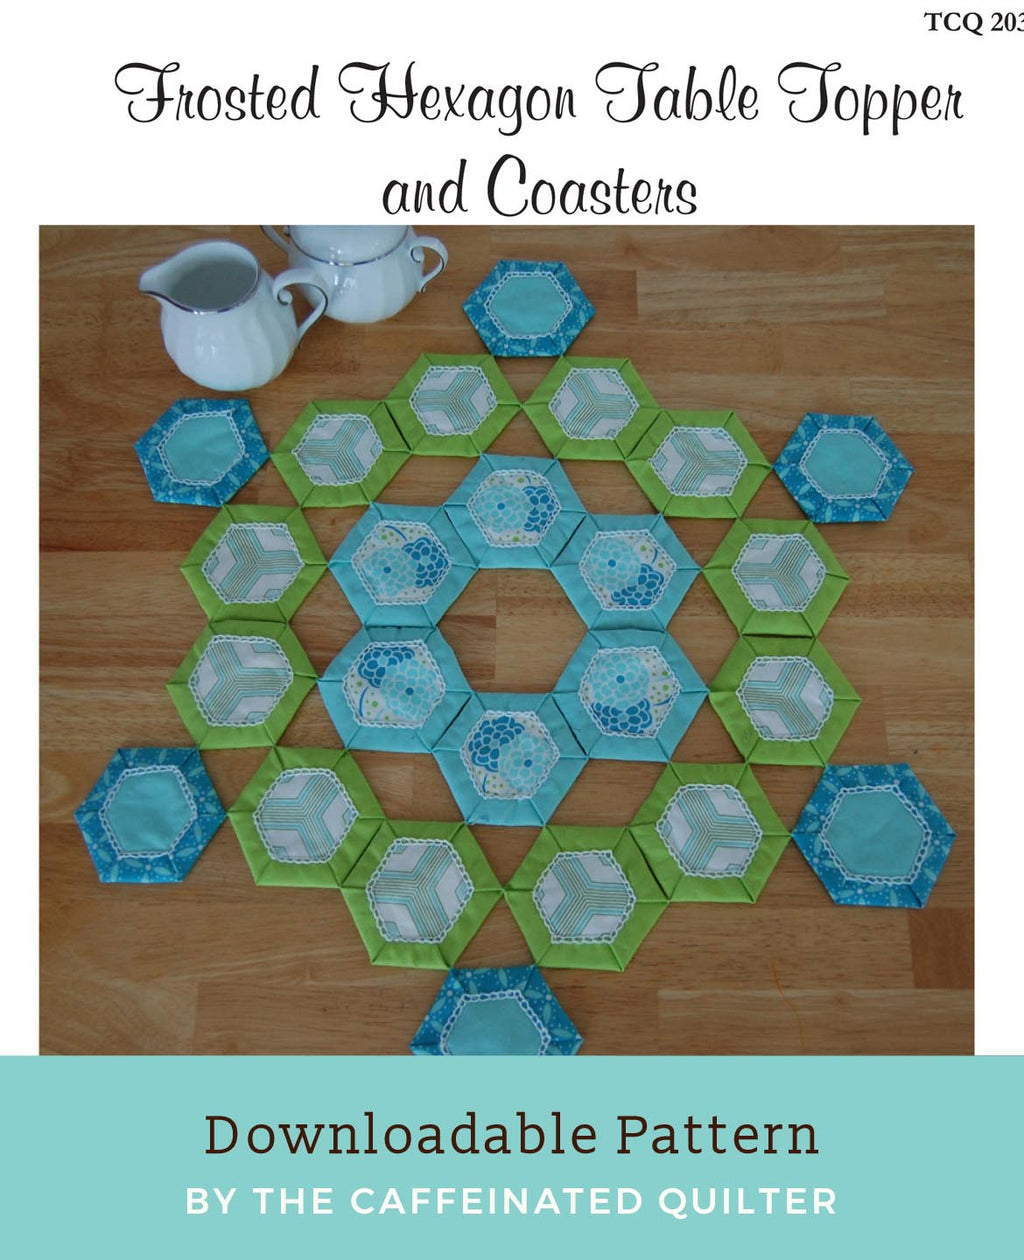 Frosted Hexagon Table Topper and Coasters Download